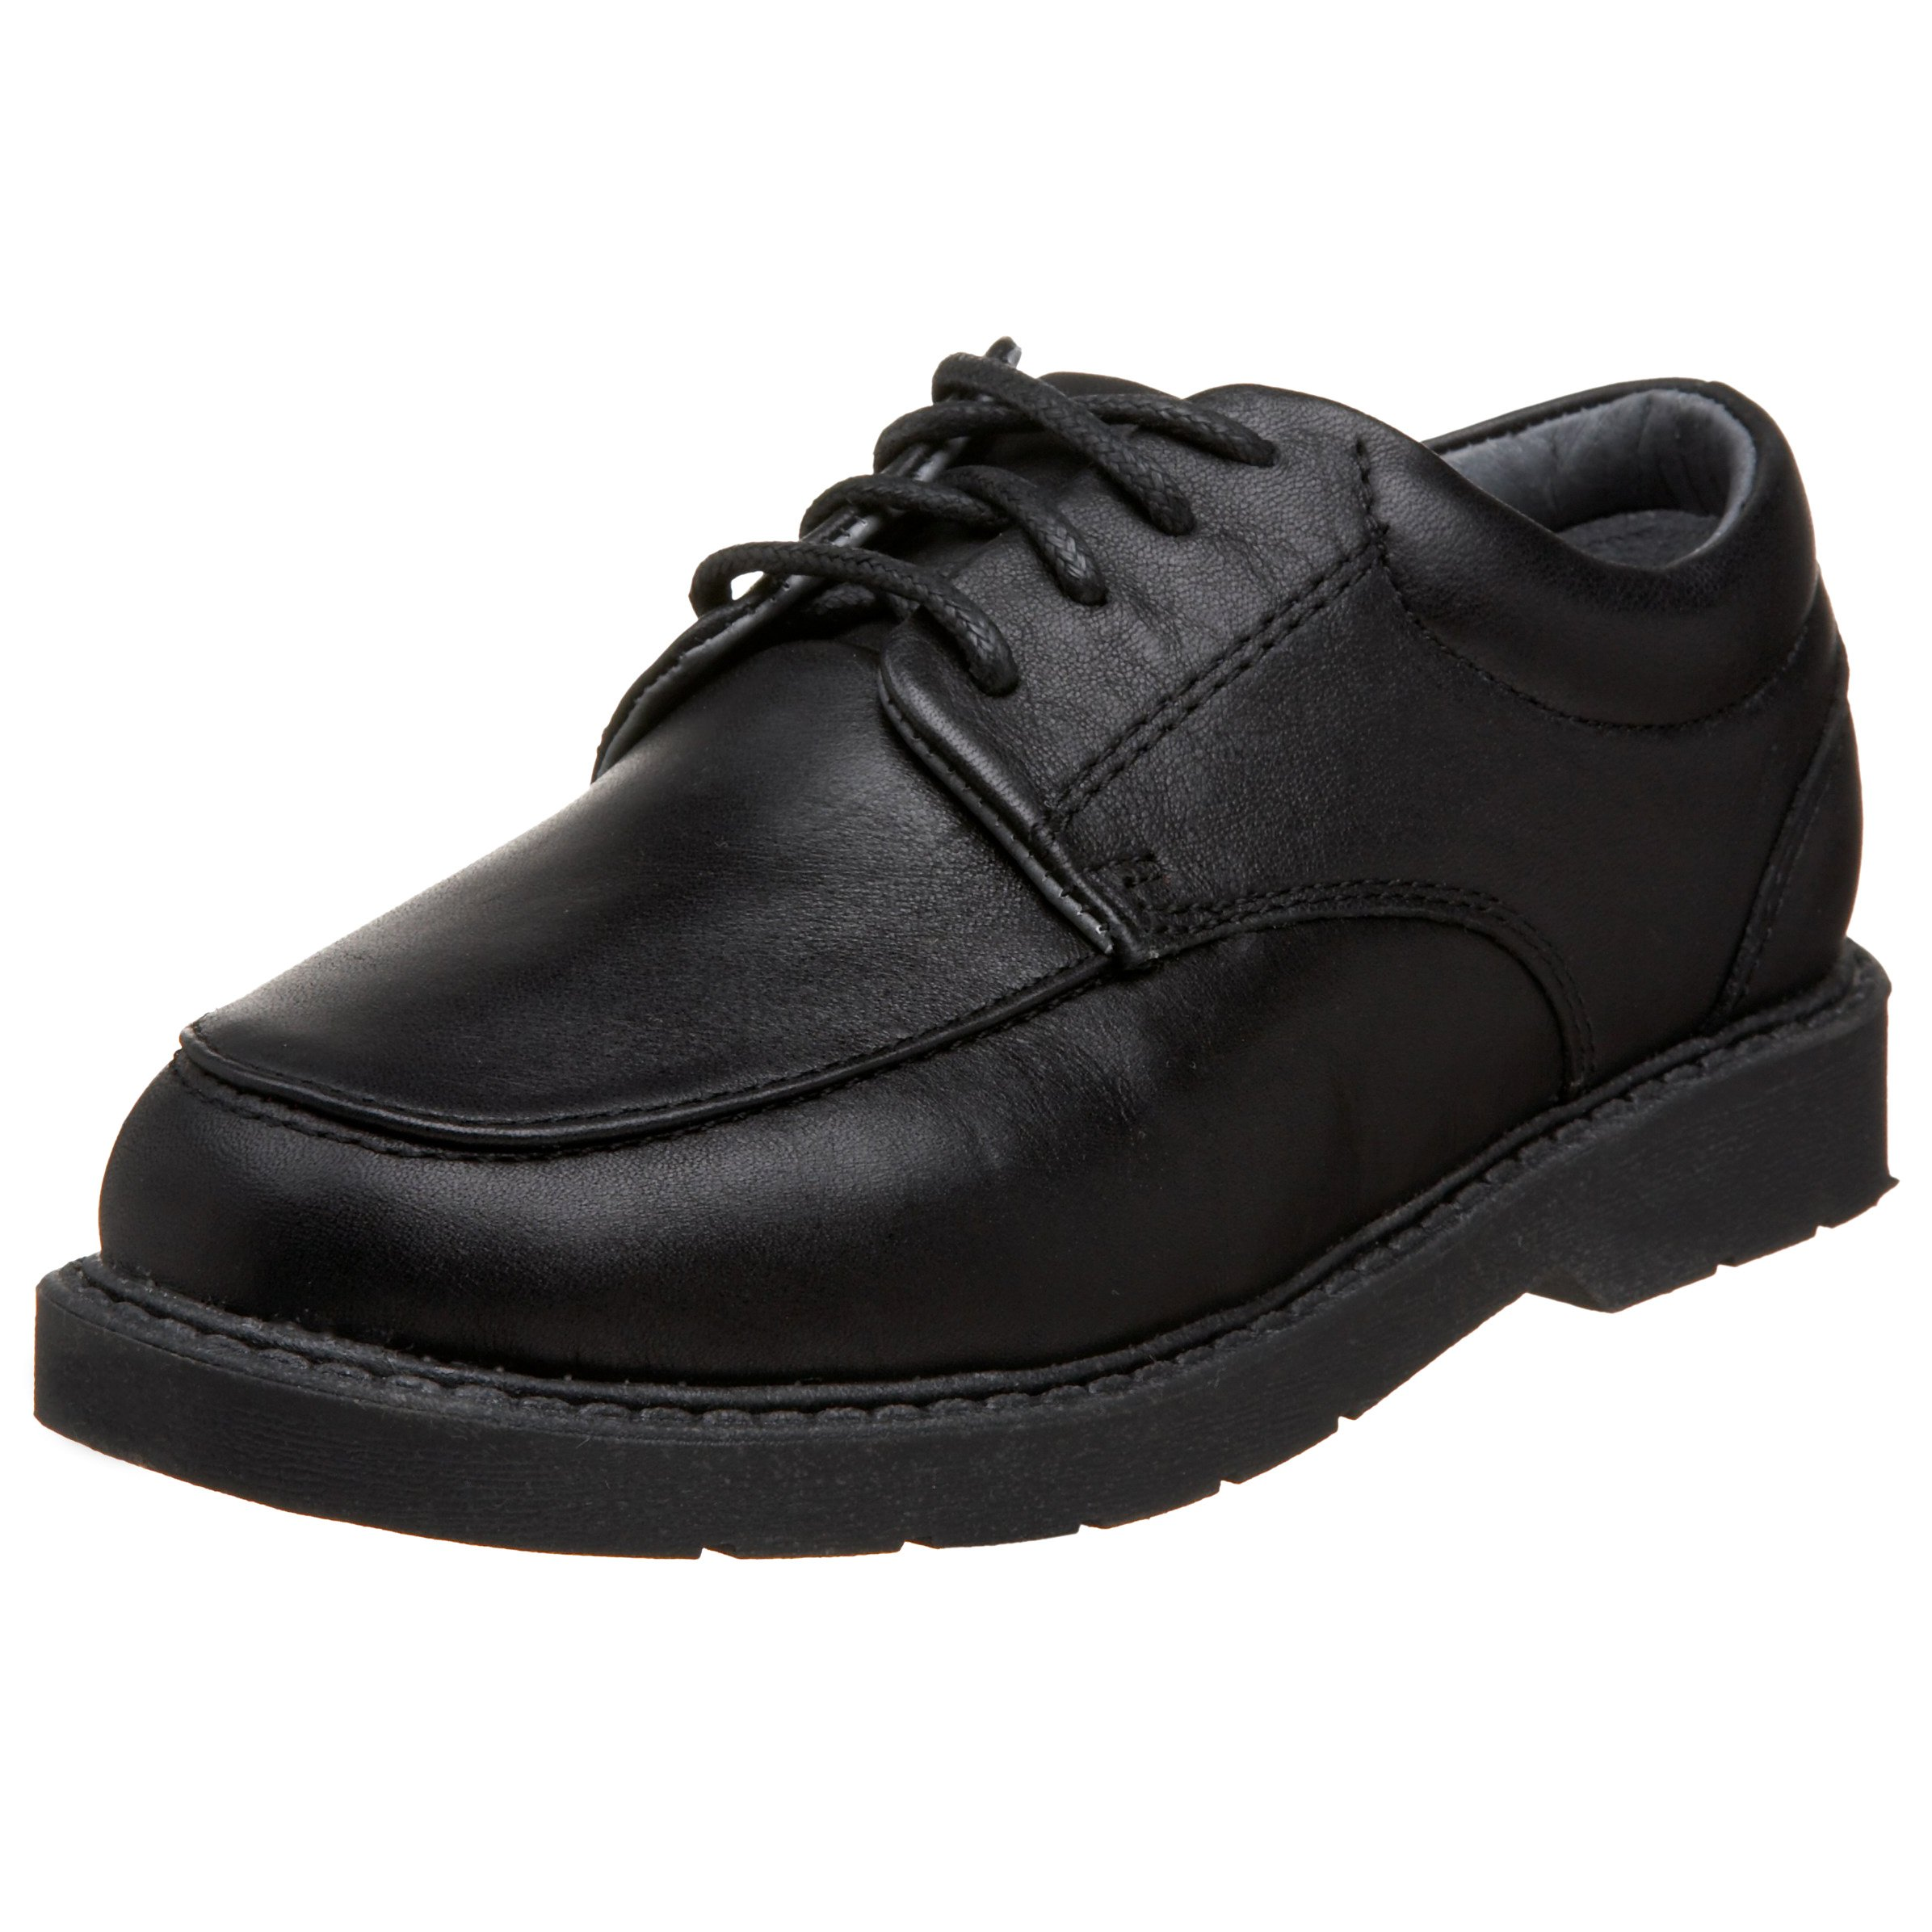 School Issue Graduate 5300 School Uniform Shoe (Toddler/Little Kid/Big Kid),Black Leather,4 W US Big Kid